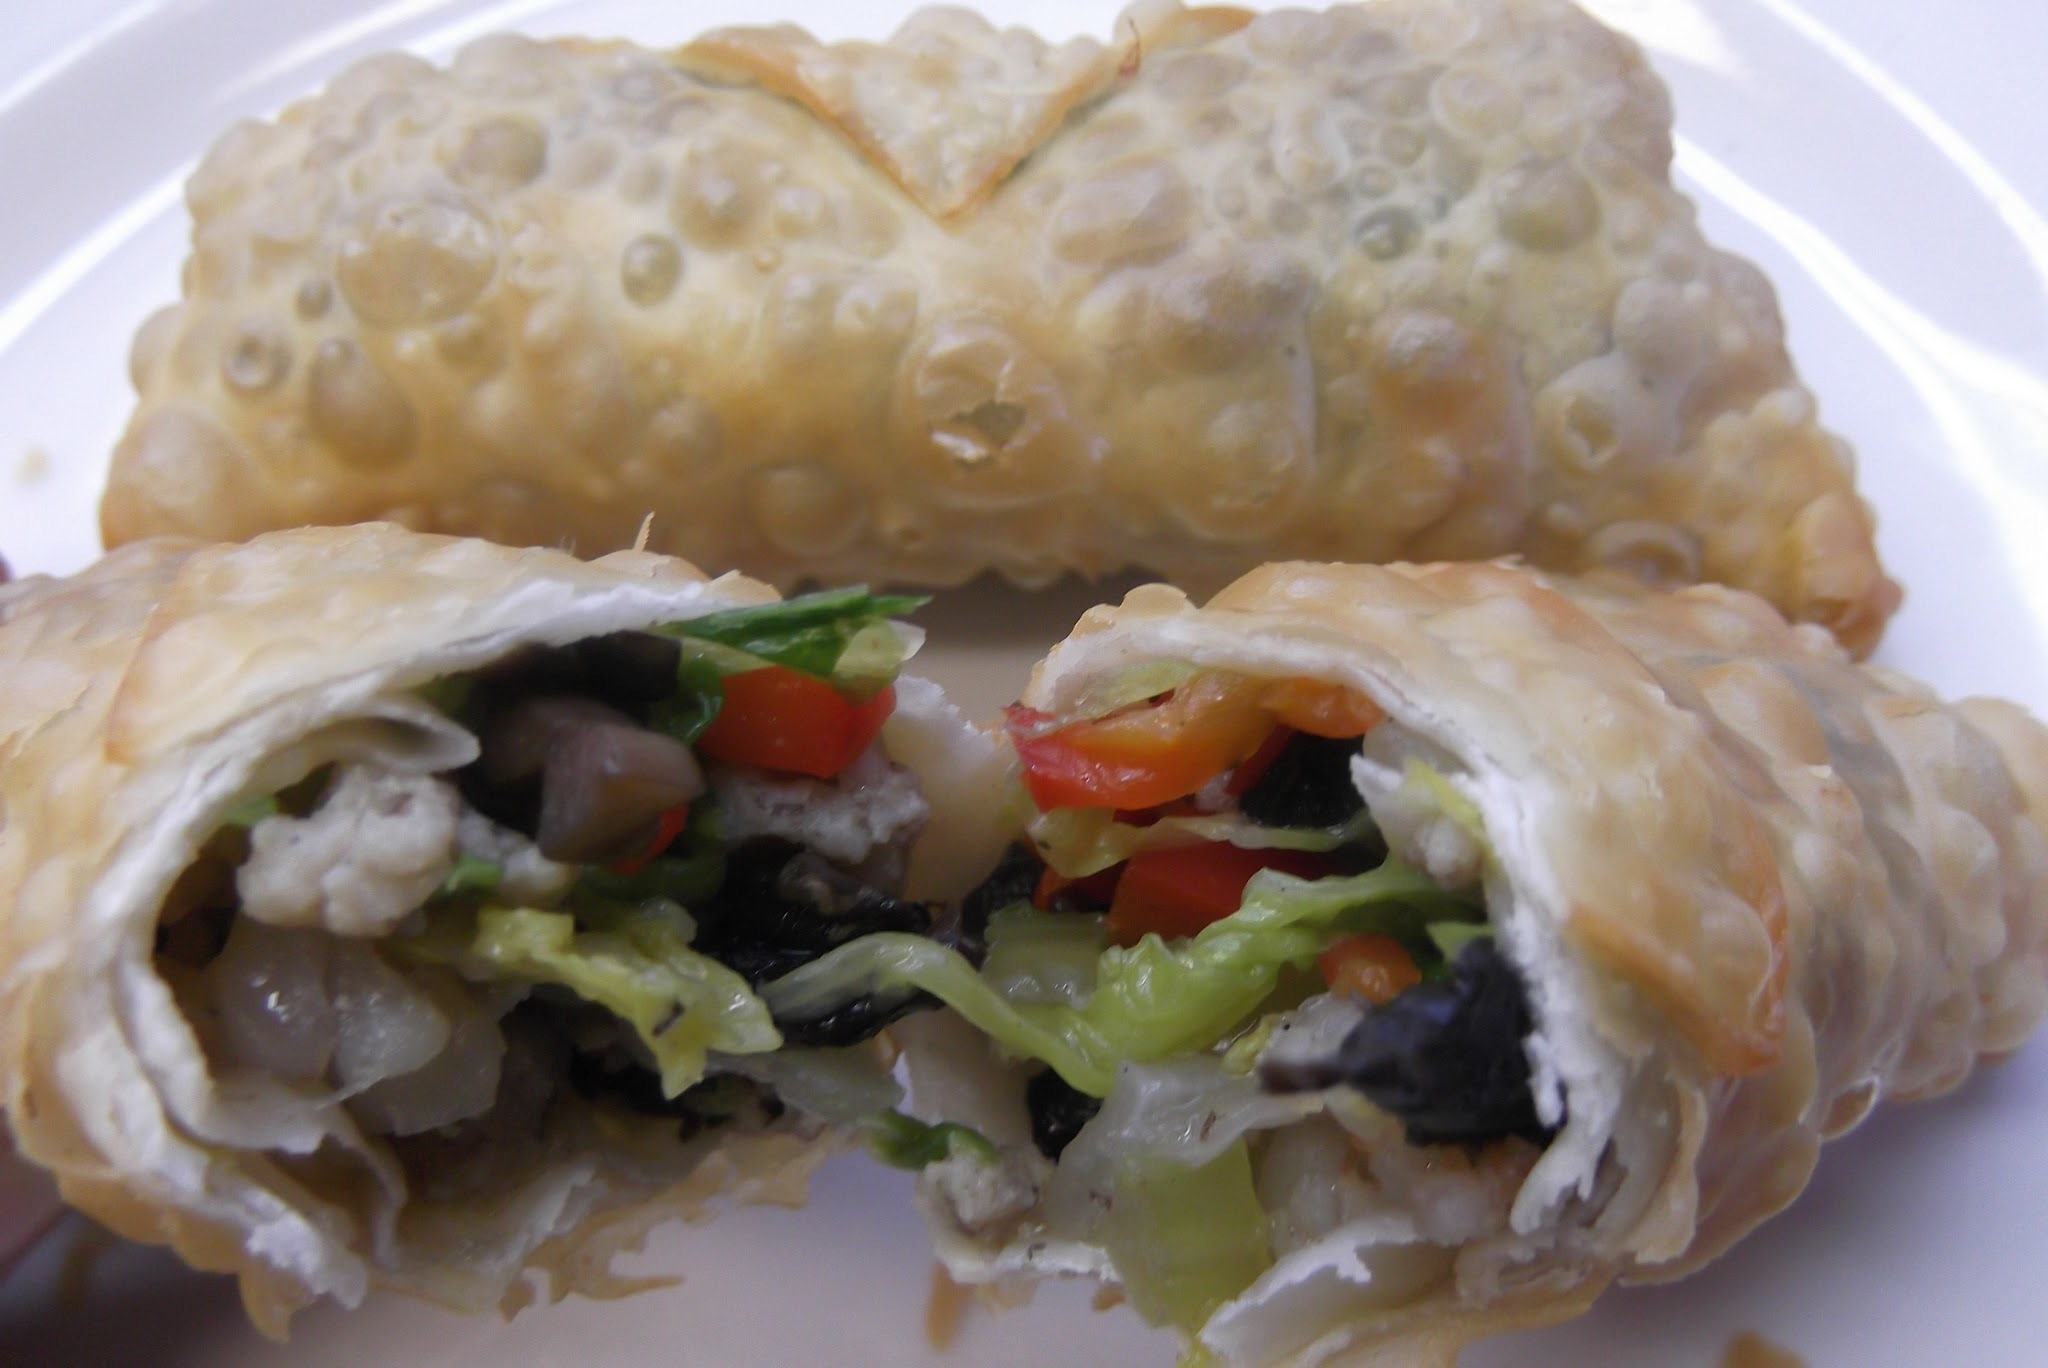 Pork, Shrimp and Vegetable Egg Rolls